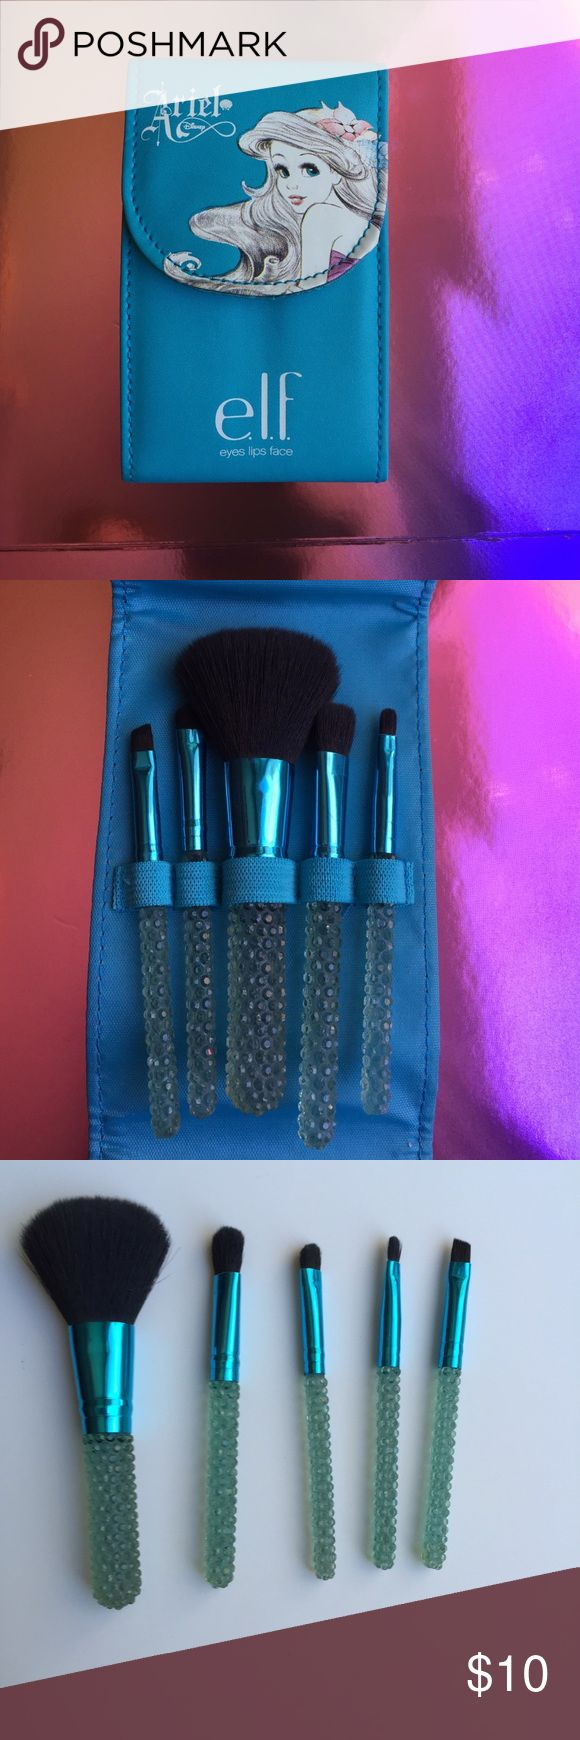 Limited Edition e.l.f. Little Mermaid brush set Limited Edition e.l.f. Little Mermaid brush set. Travel size. Elf Makeup Brushes & Tools